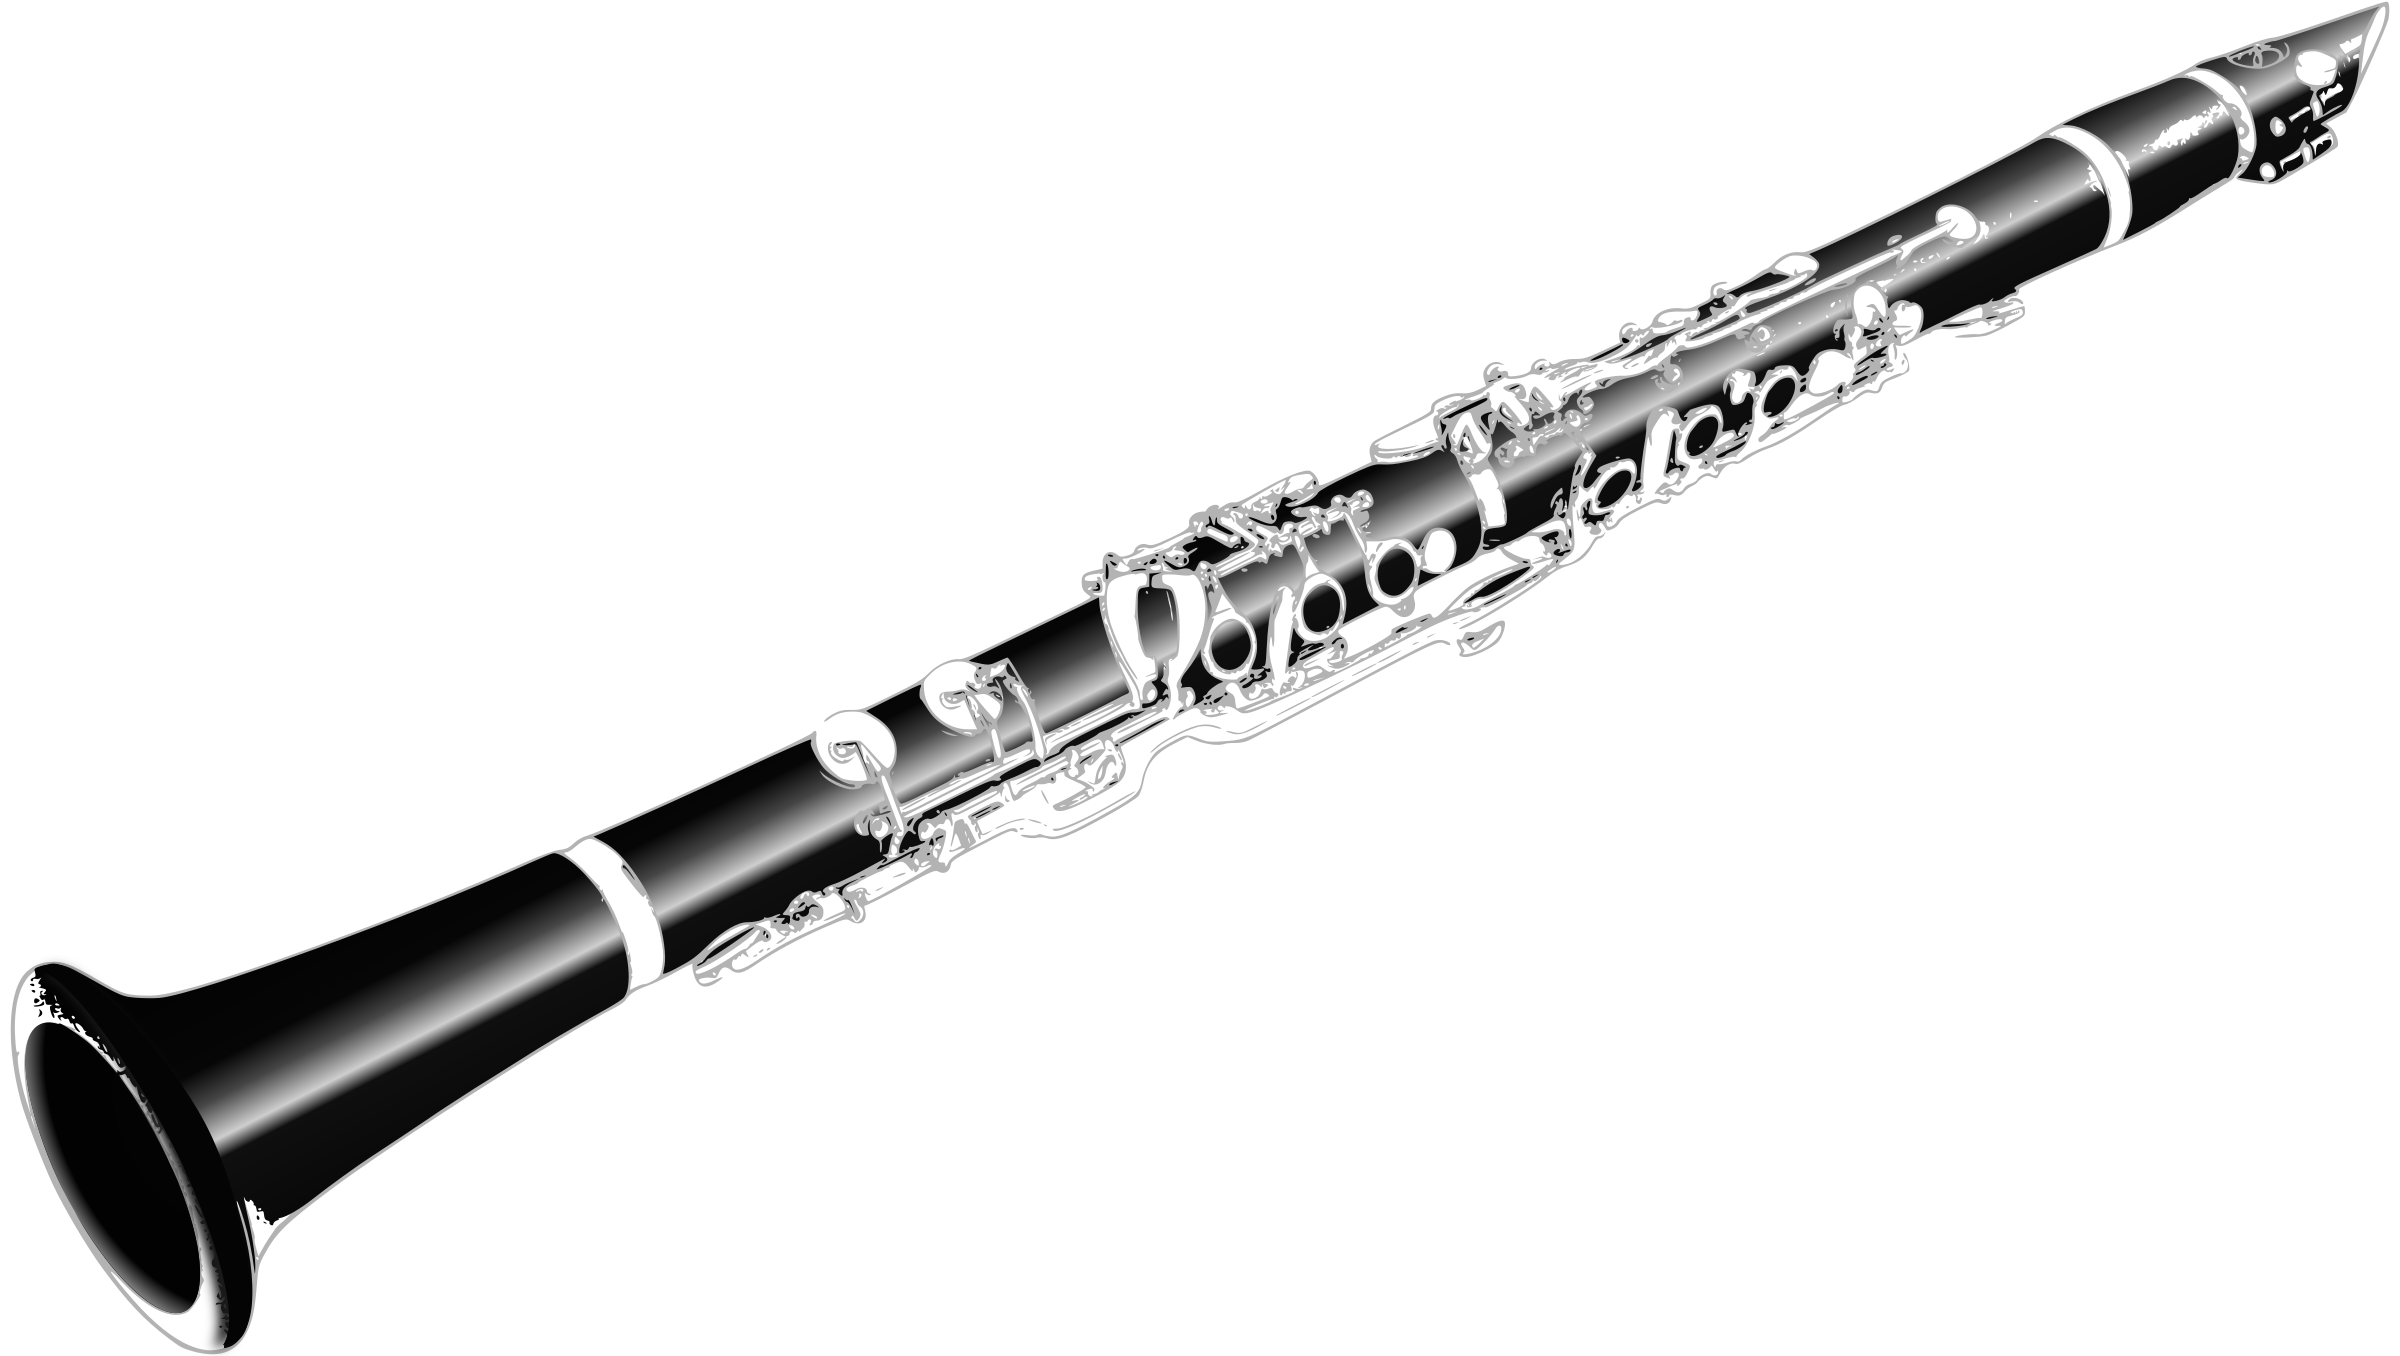 Clarinet clipart bass. Big image png